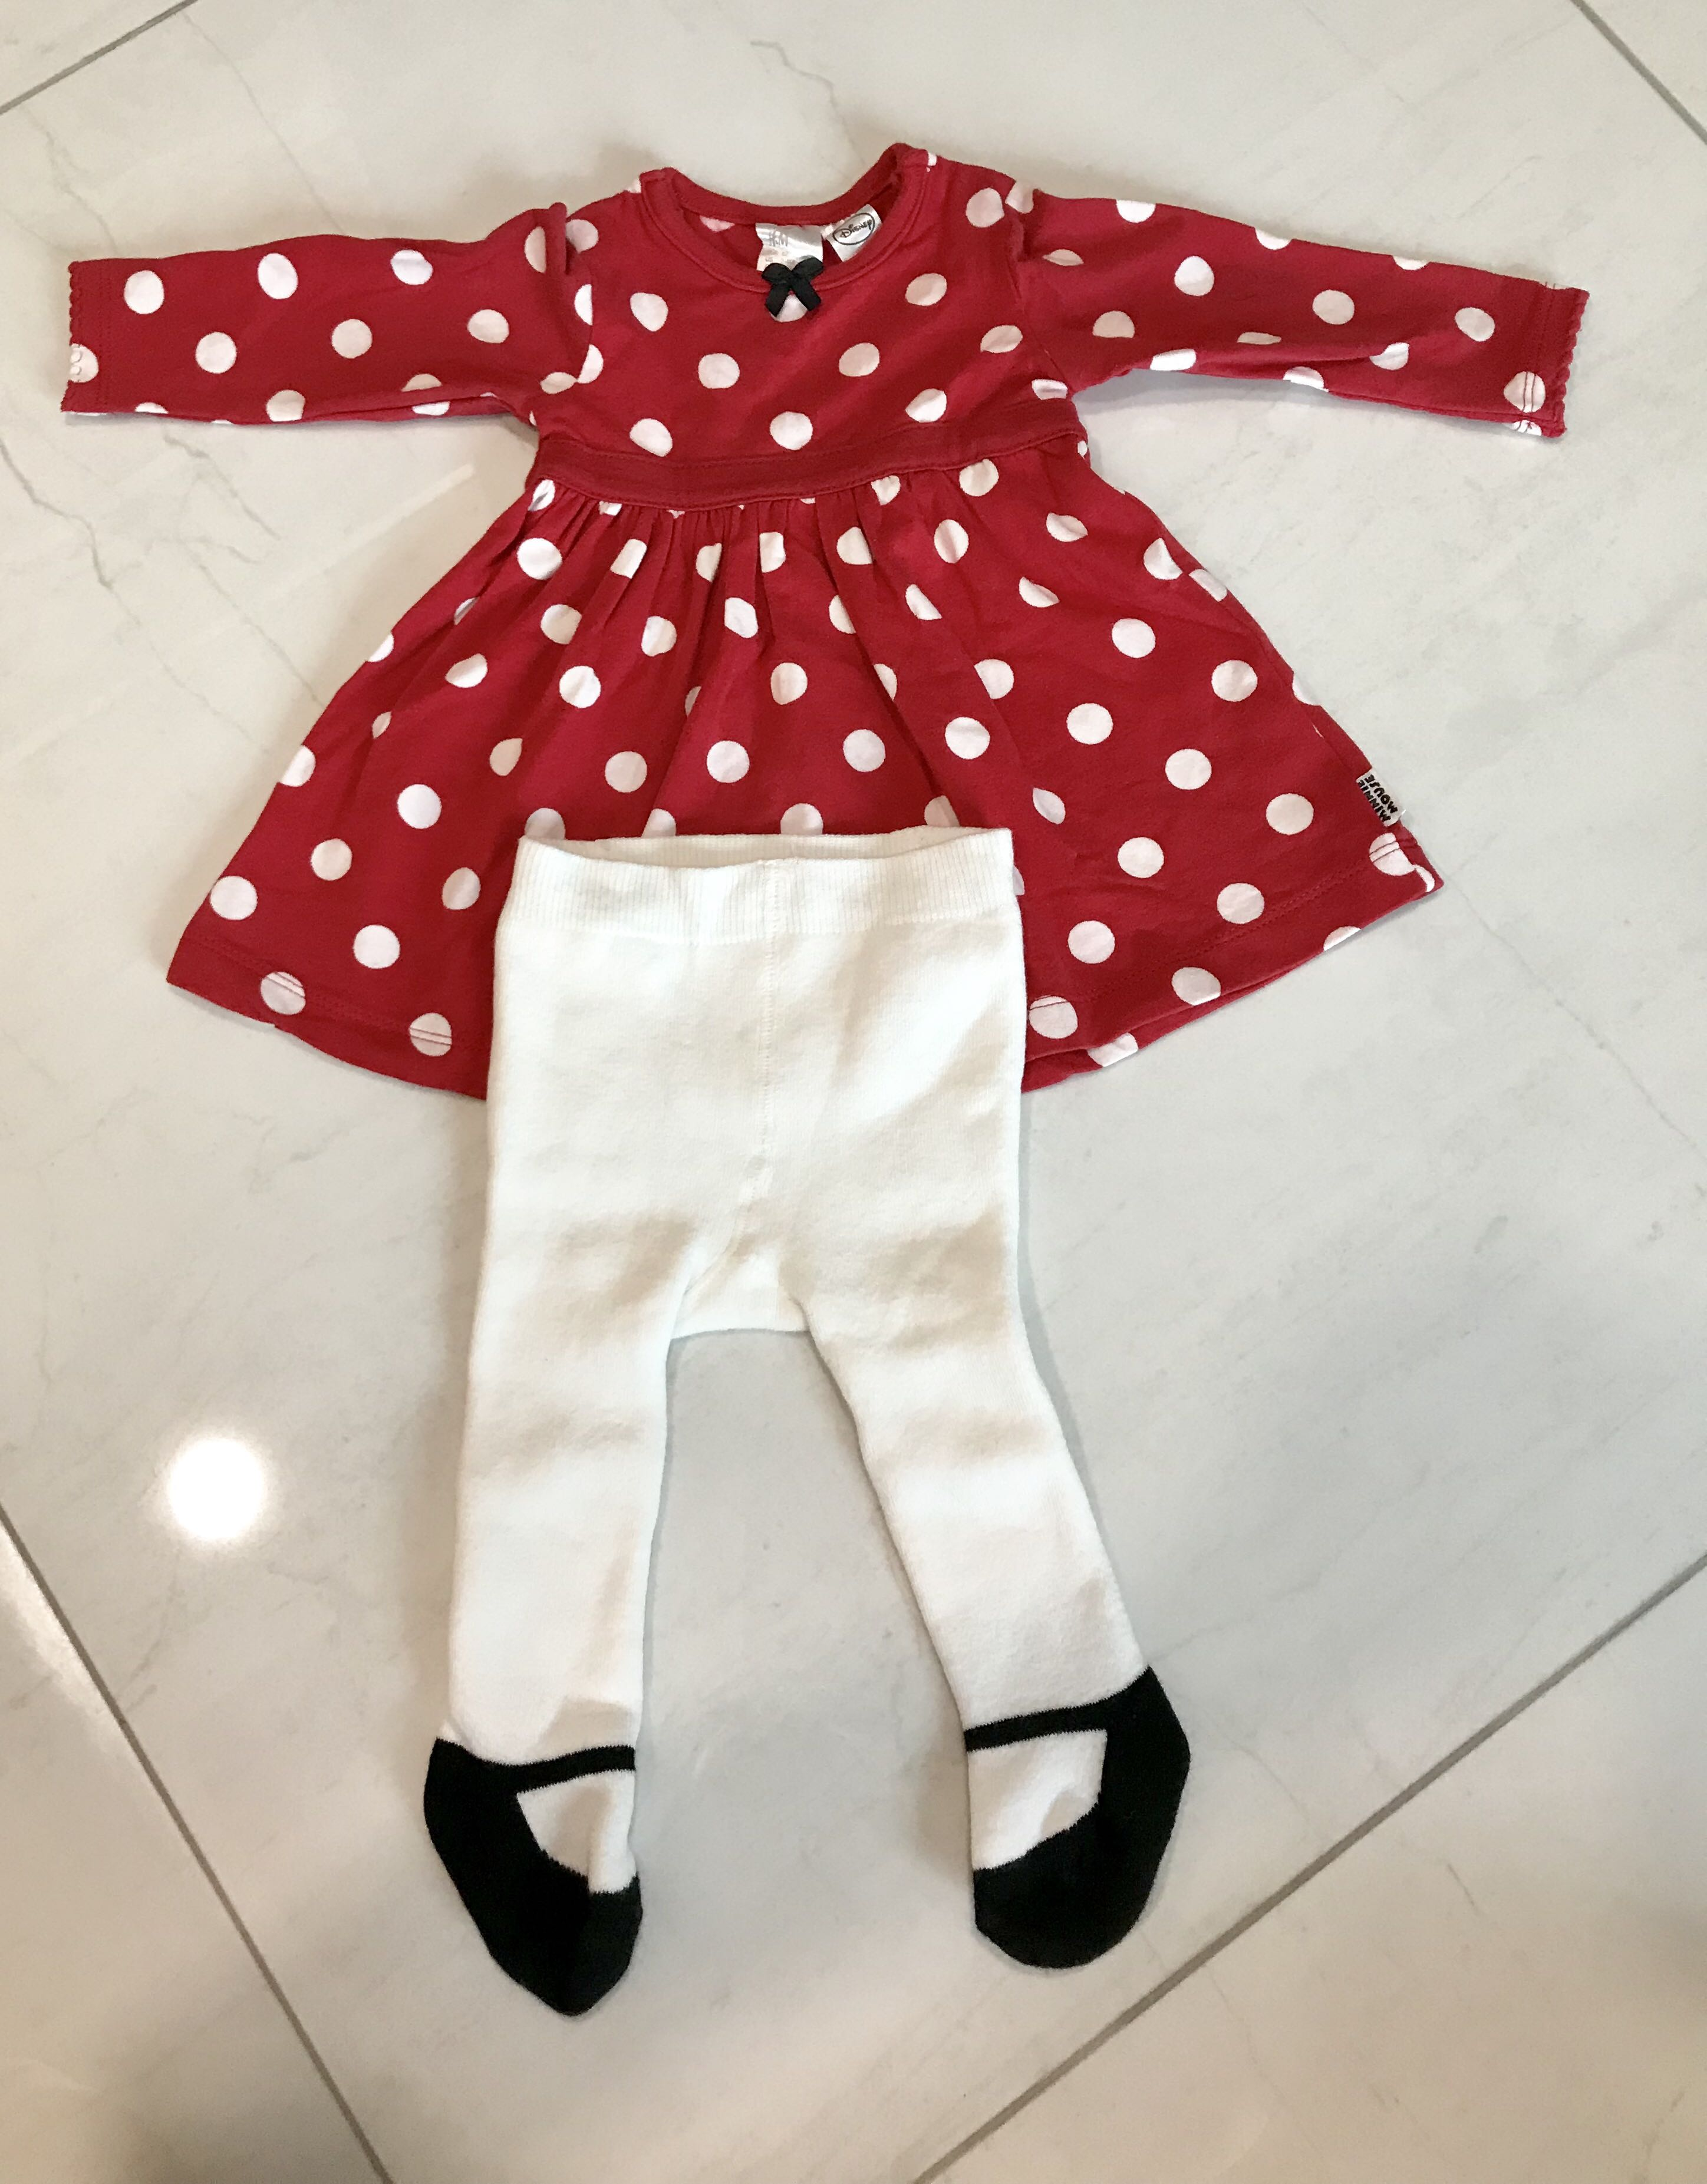 818058ee0 H&M Top & Leggings Polka Dot Set, Babies & Kids, Babies Apparel on ...